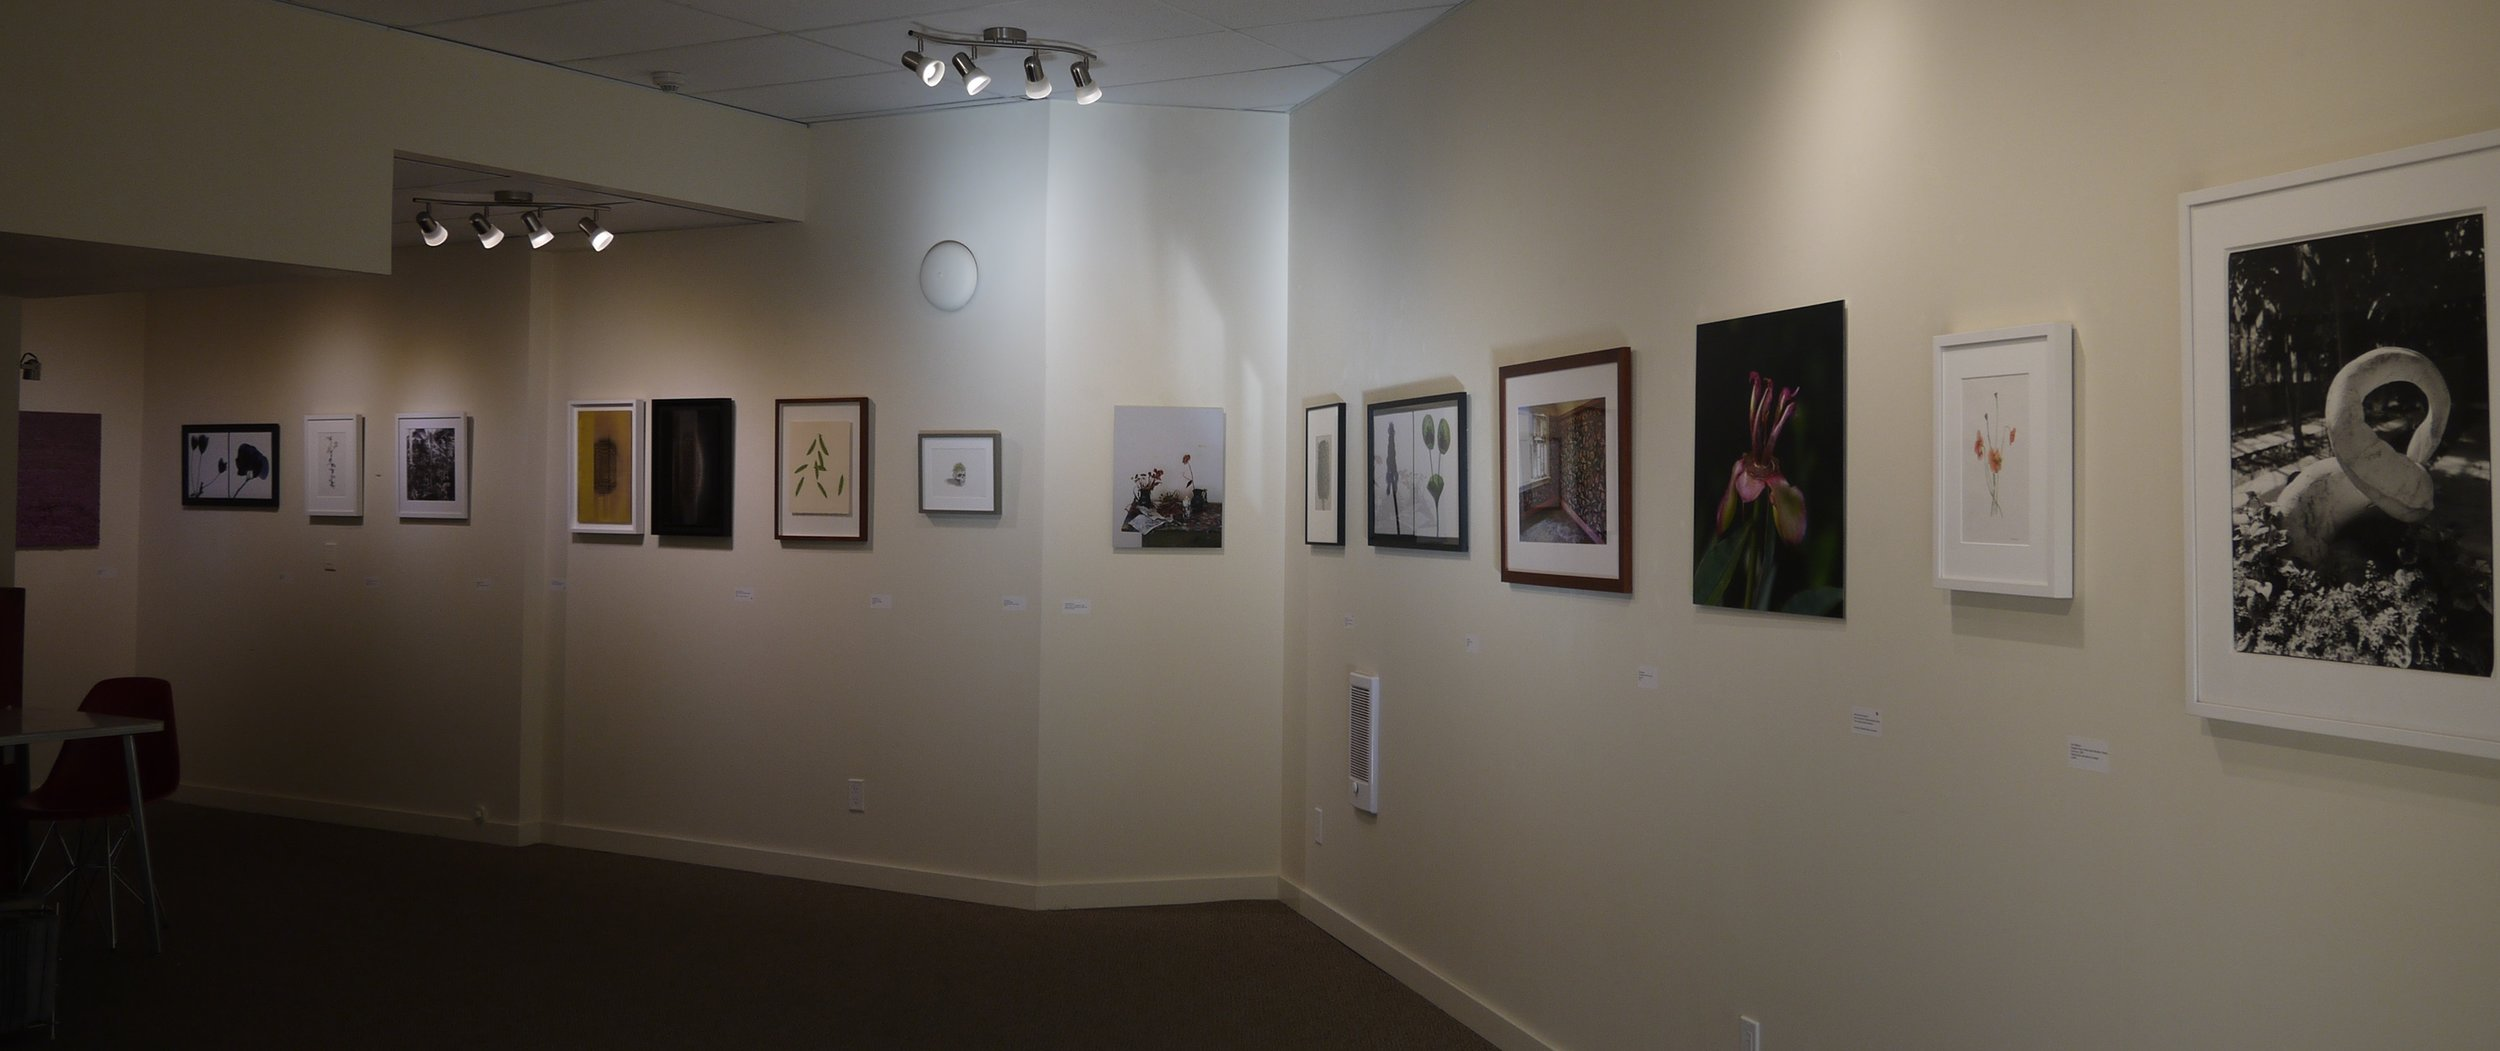 Installation view from gallery entrance